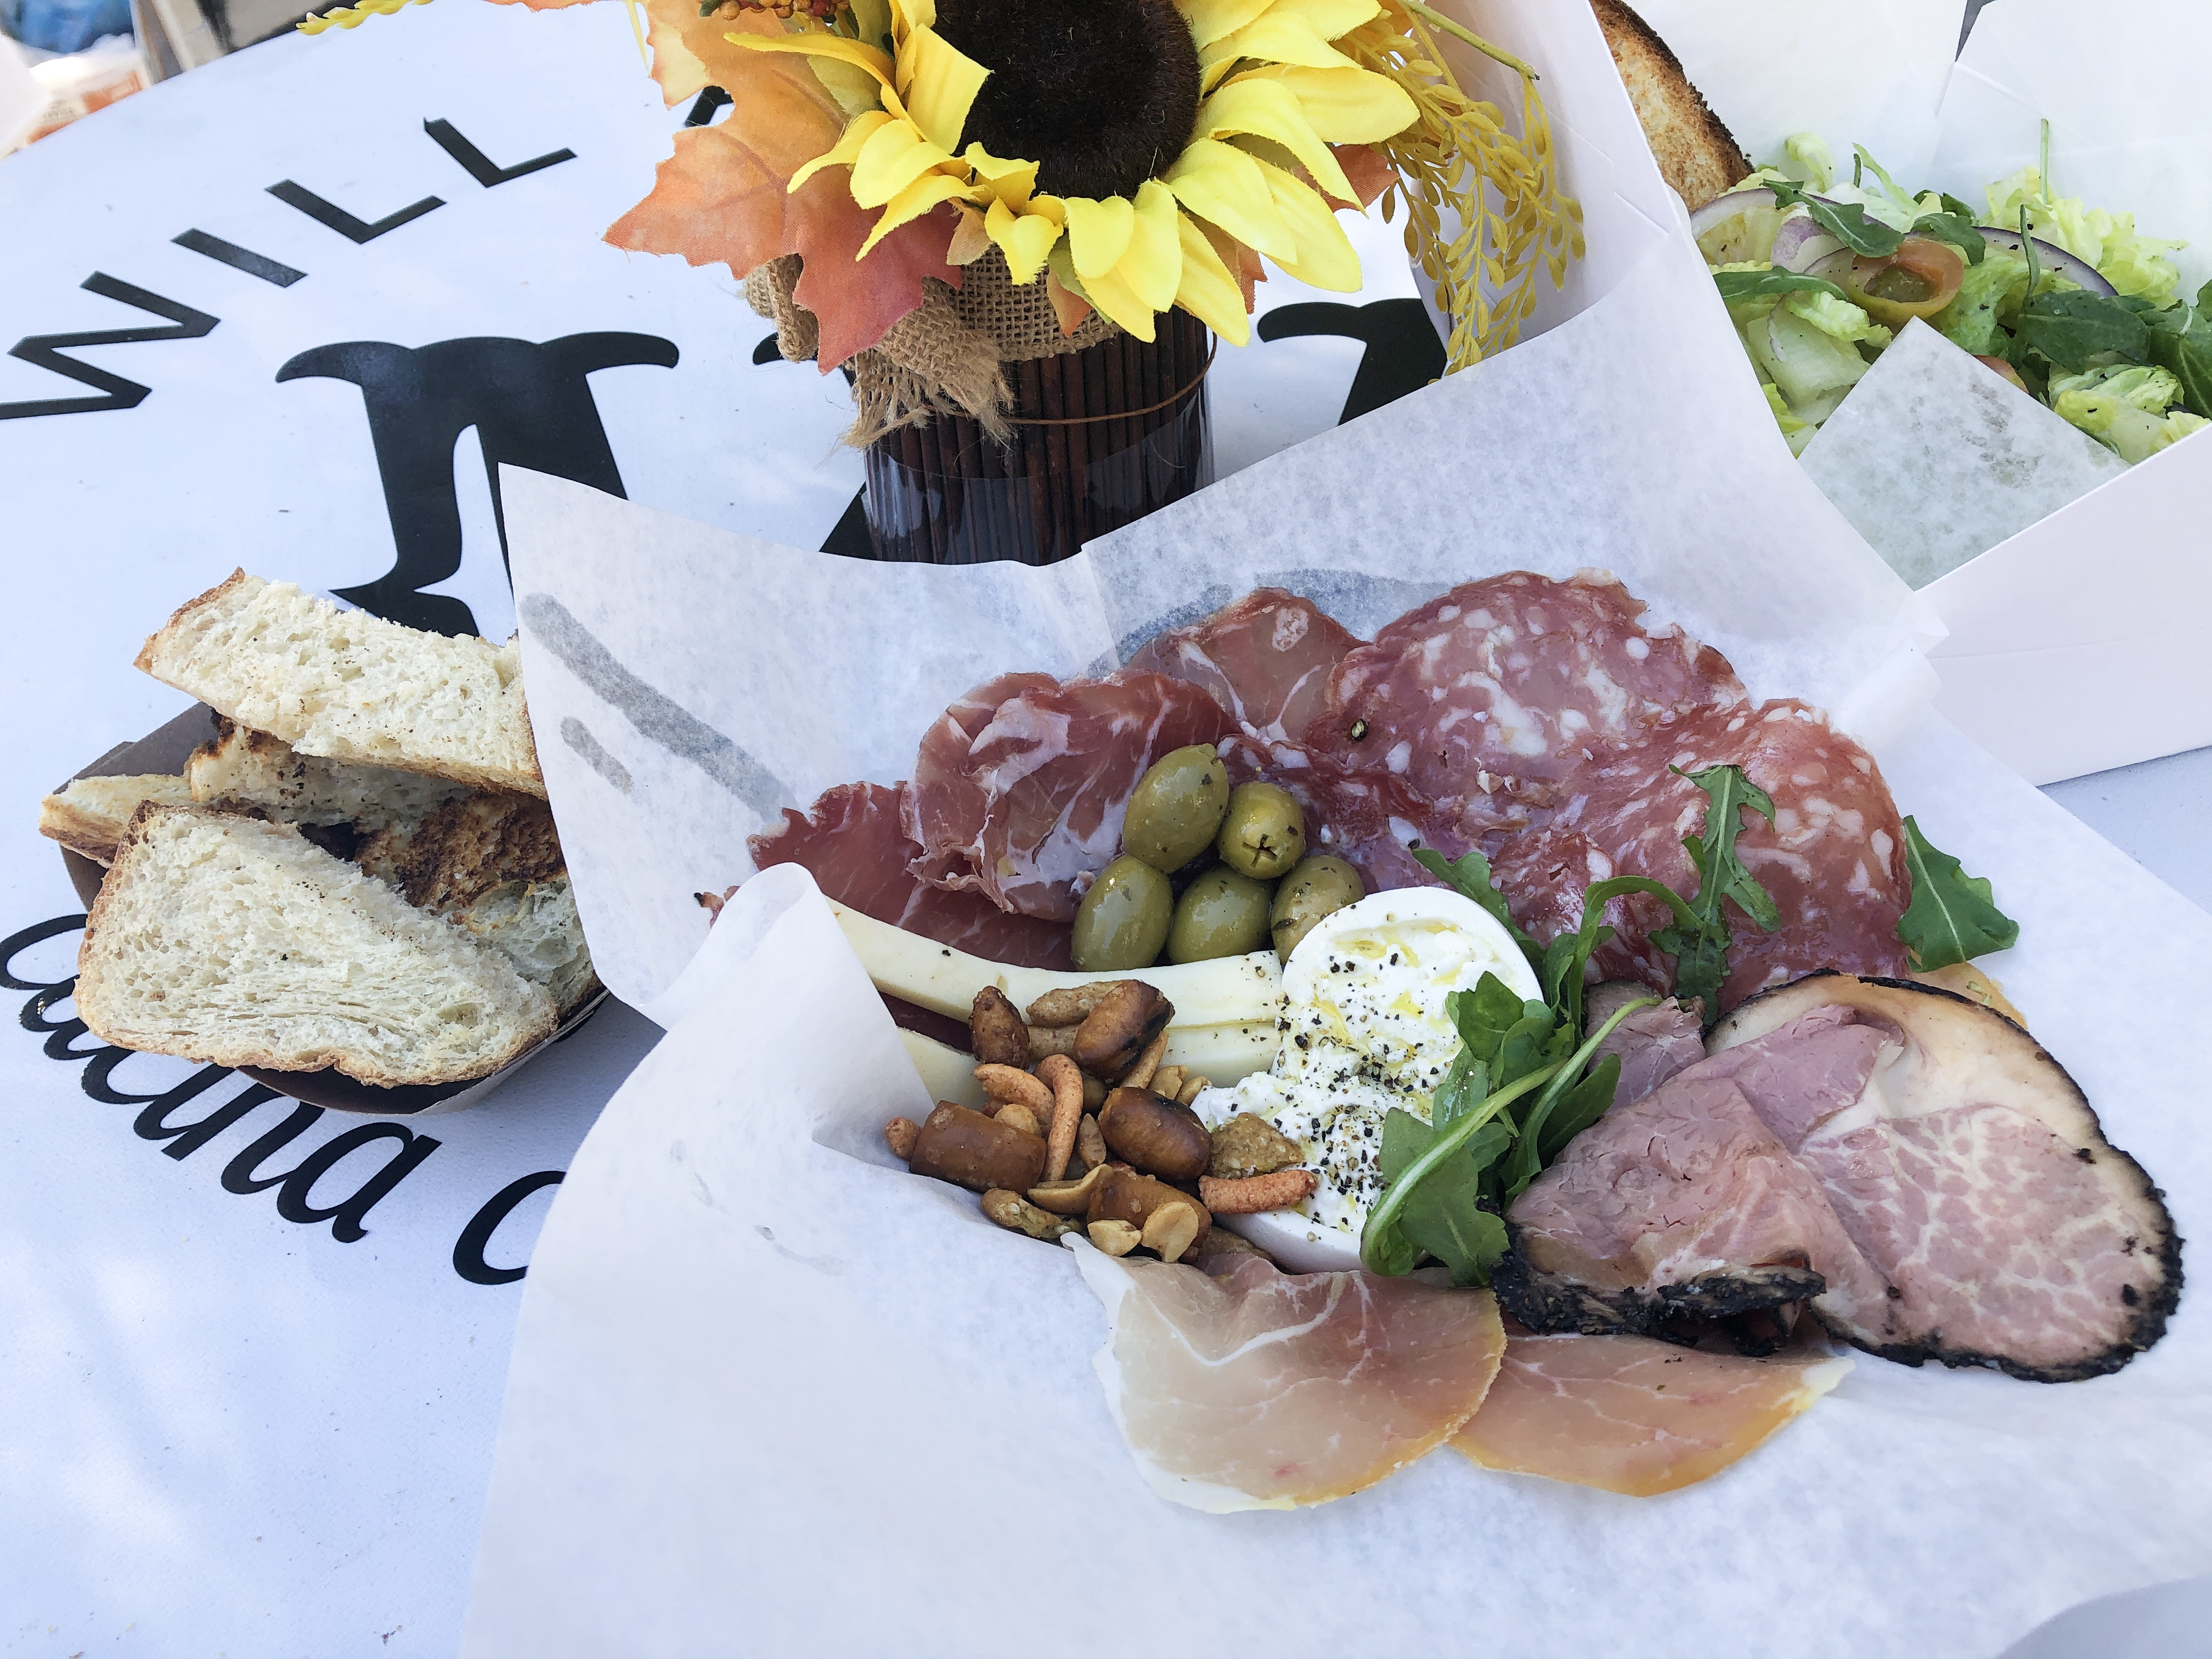 Charcuterie Plate with imported cured meats and cheeses, nuts, honey and toasted crostini